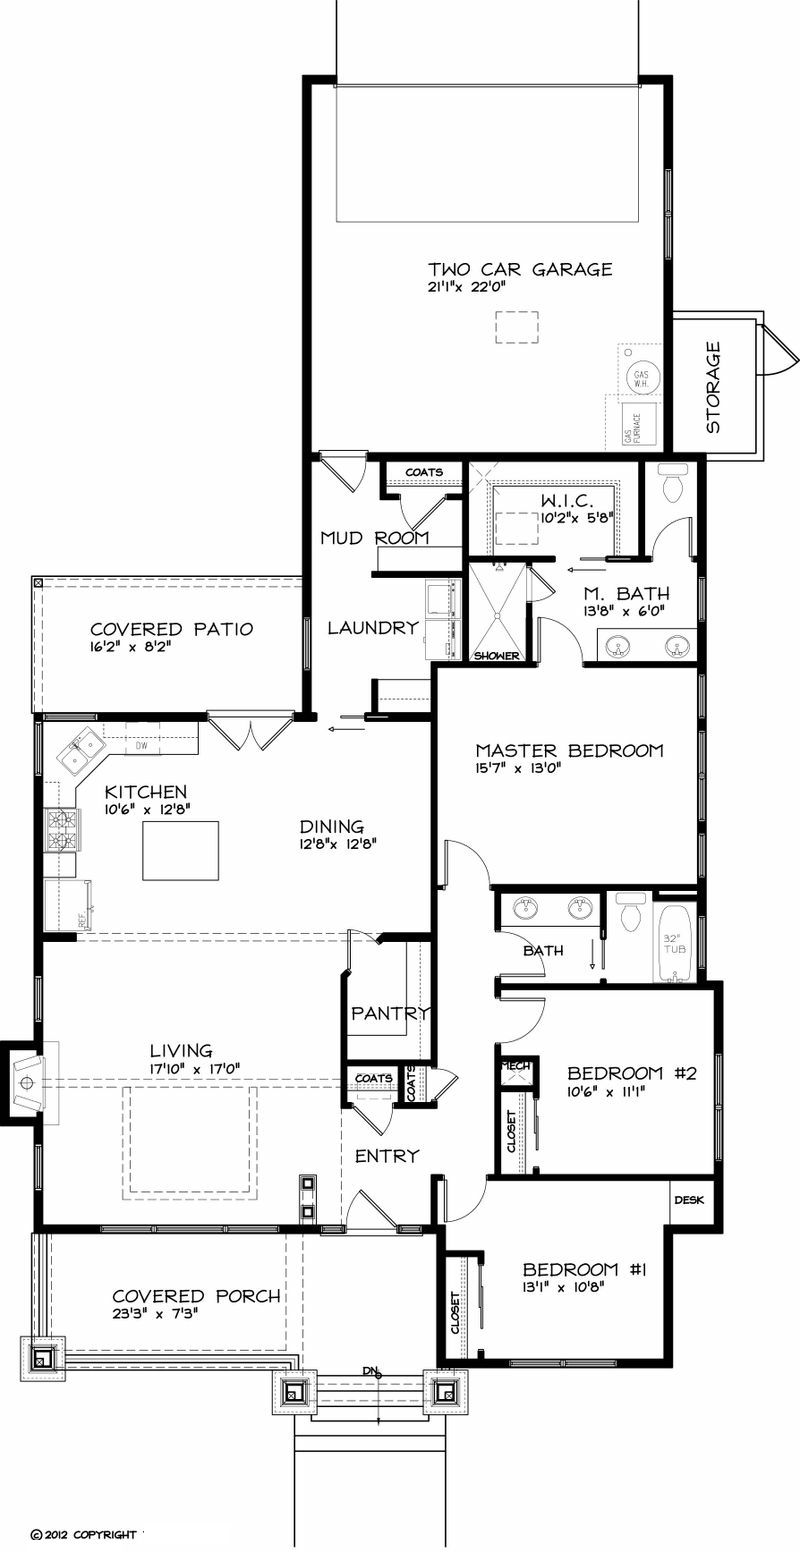 Like A Lot But No Possibility For House Plan This Has Most Of Wishlist Missing Separate Living Room Piano Sitting Areamissing Office